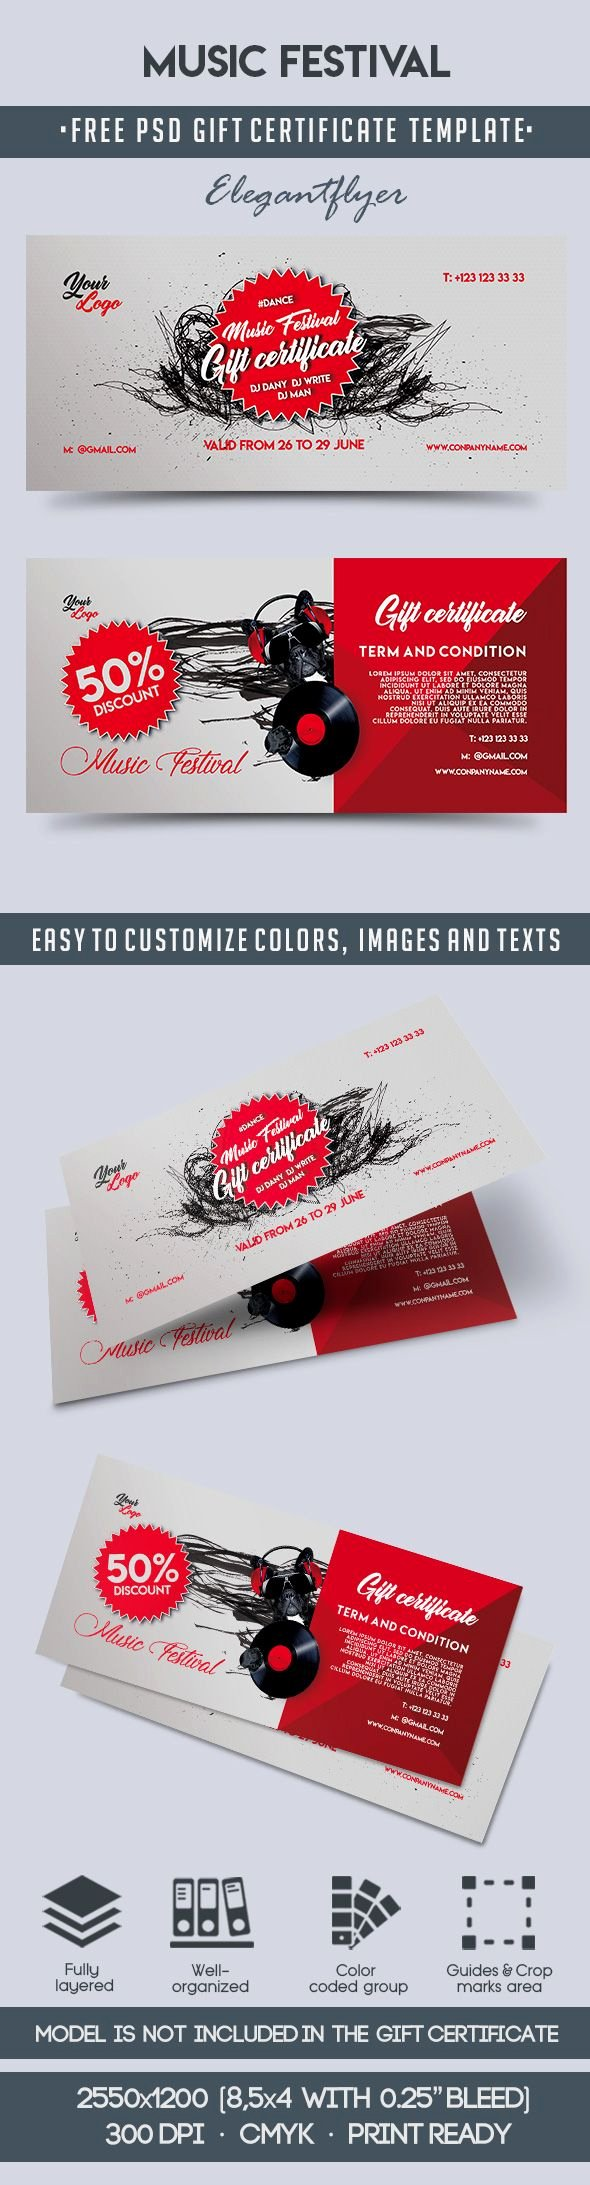 Gift Certificate Template Psd Unique Music Festival – Free Gift Certificate Psd Template – by